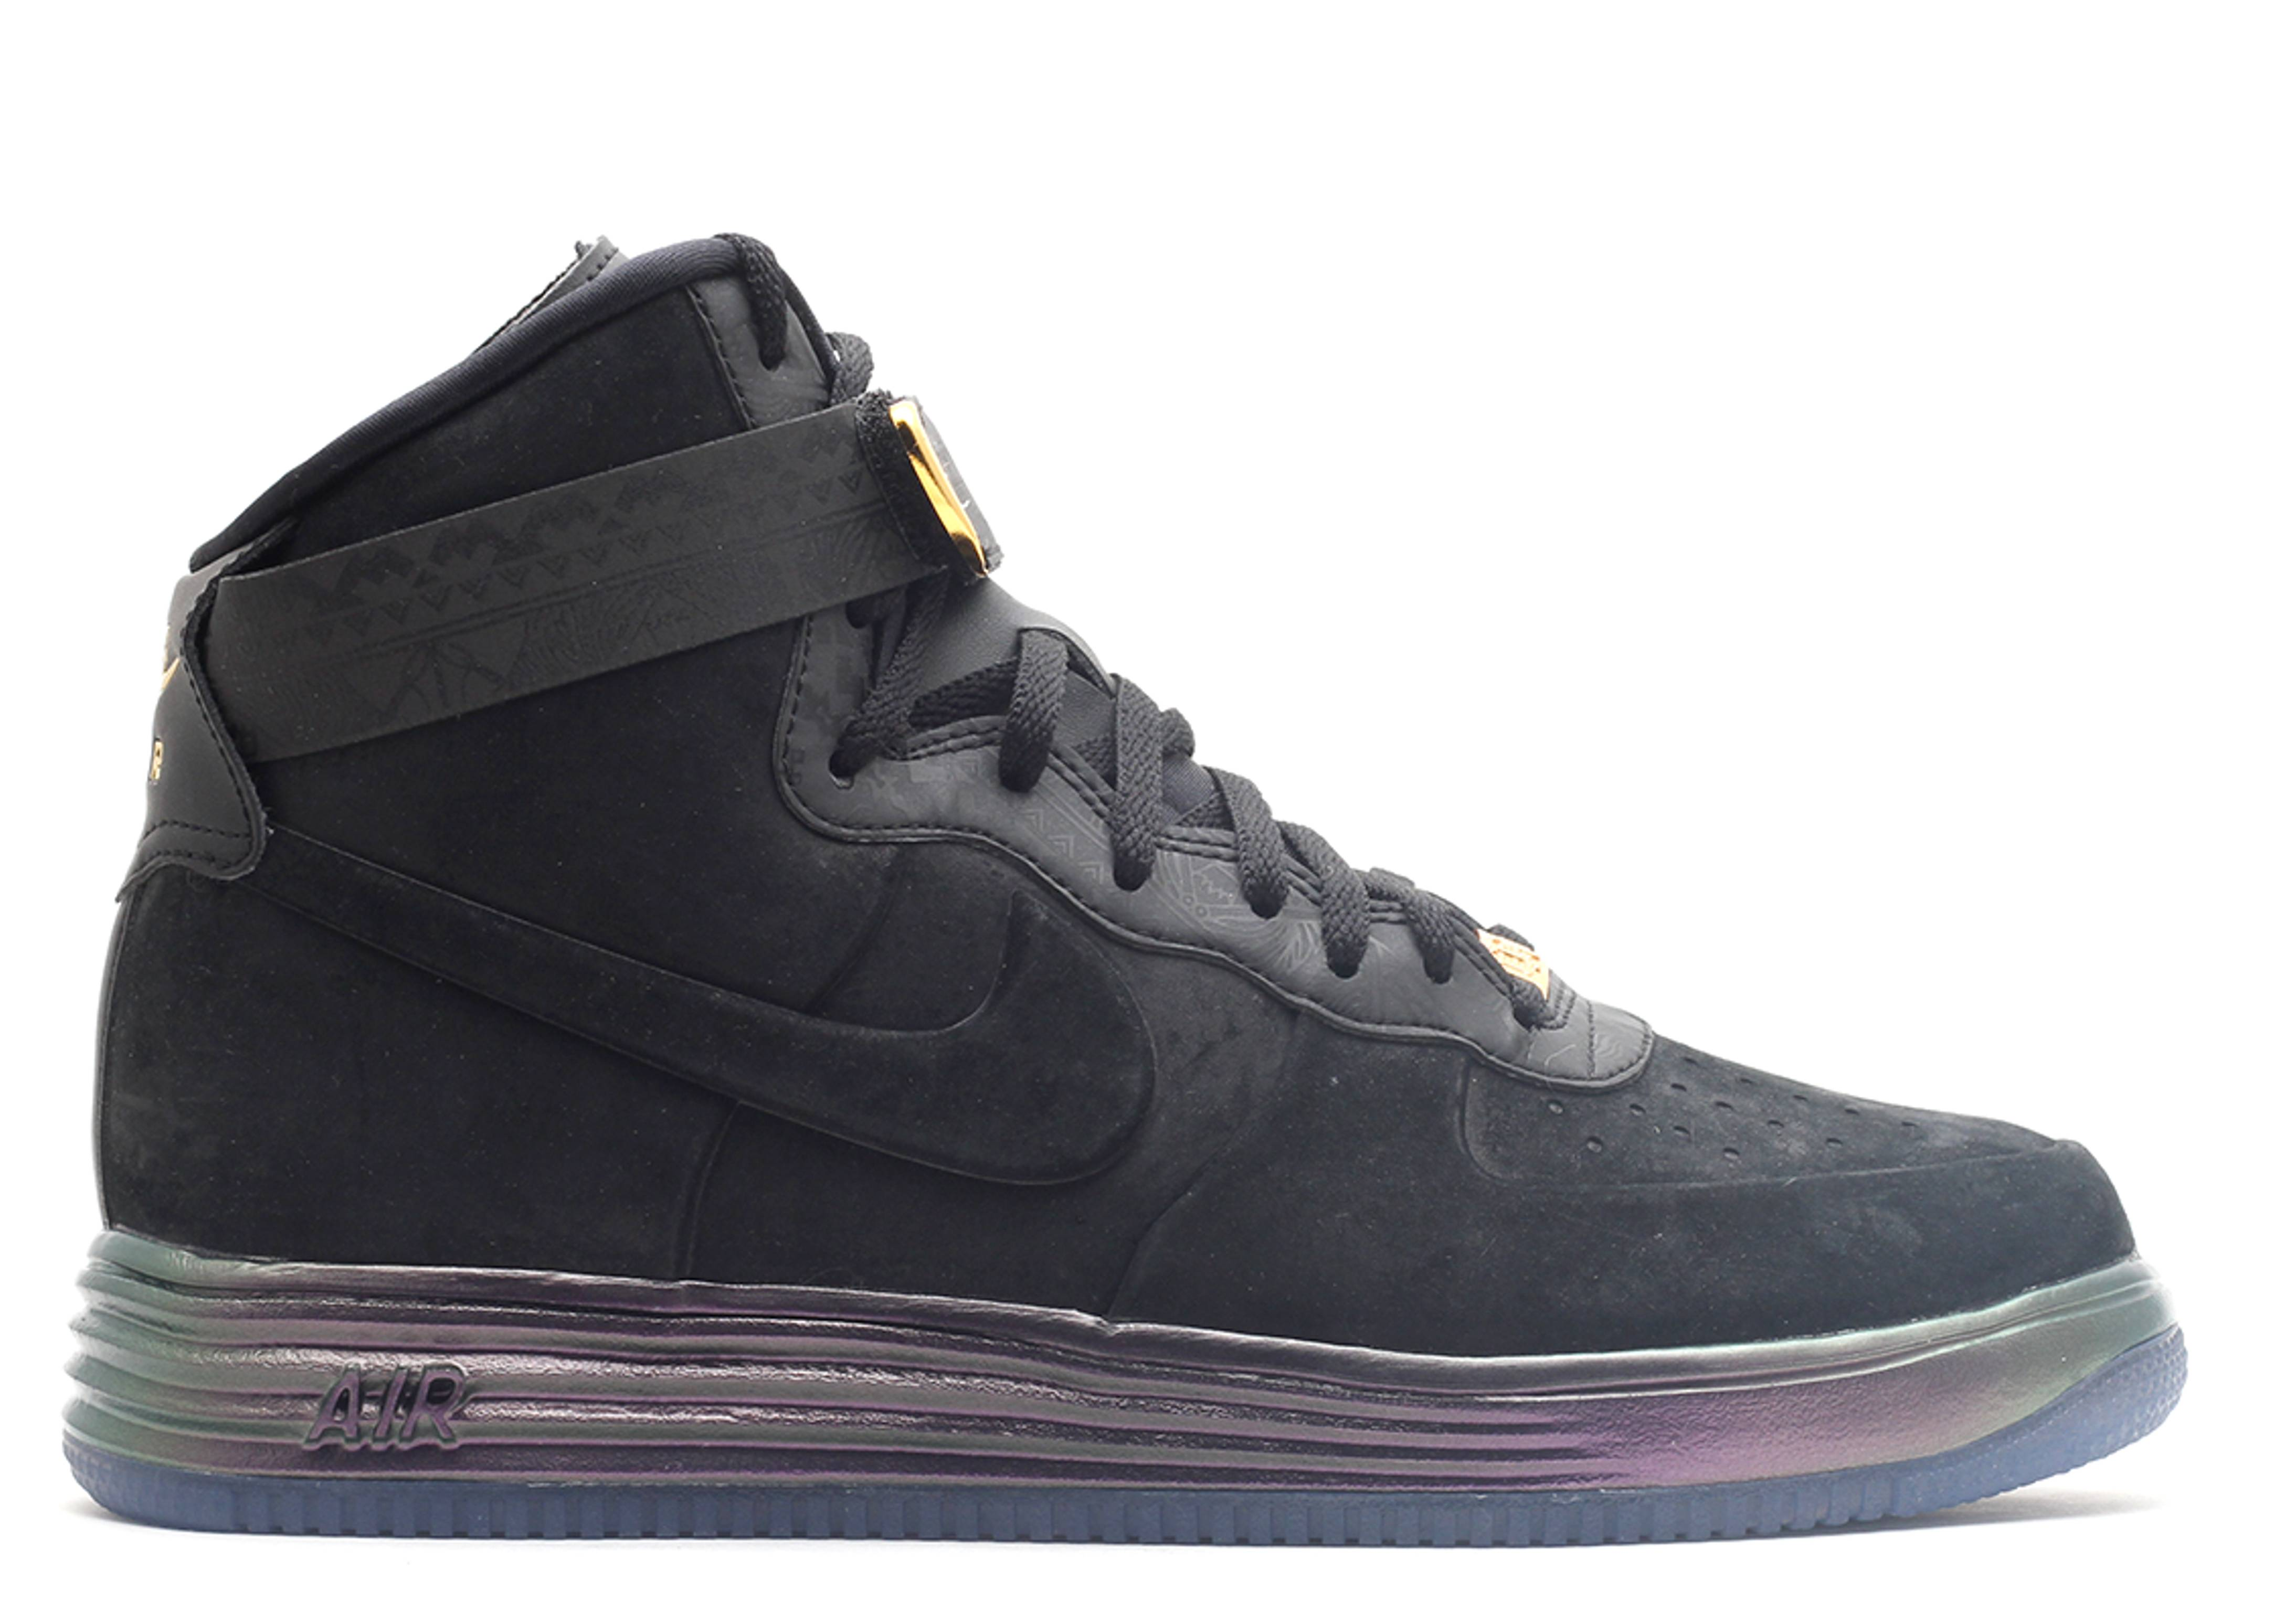 huge selection of ebe26 1c228 Lunar Force 1 Lux Bhm Qs